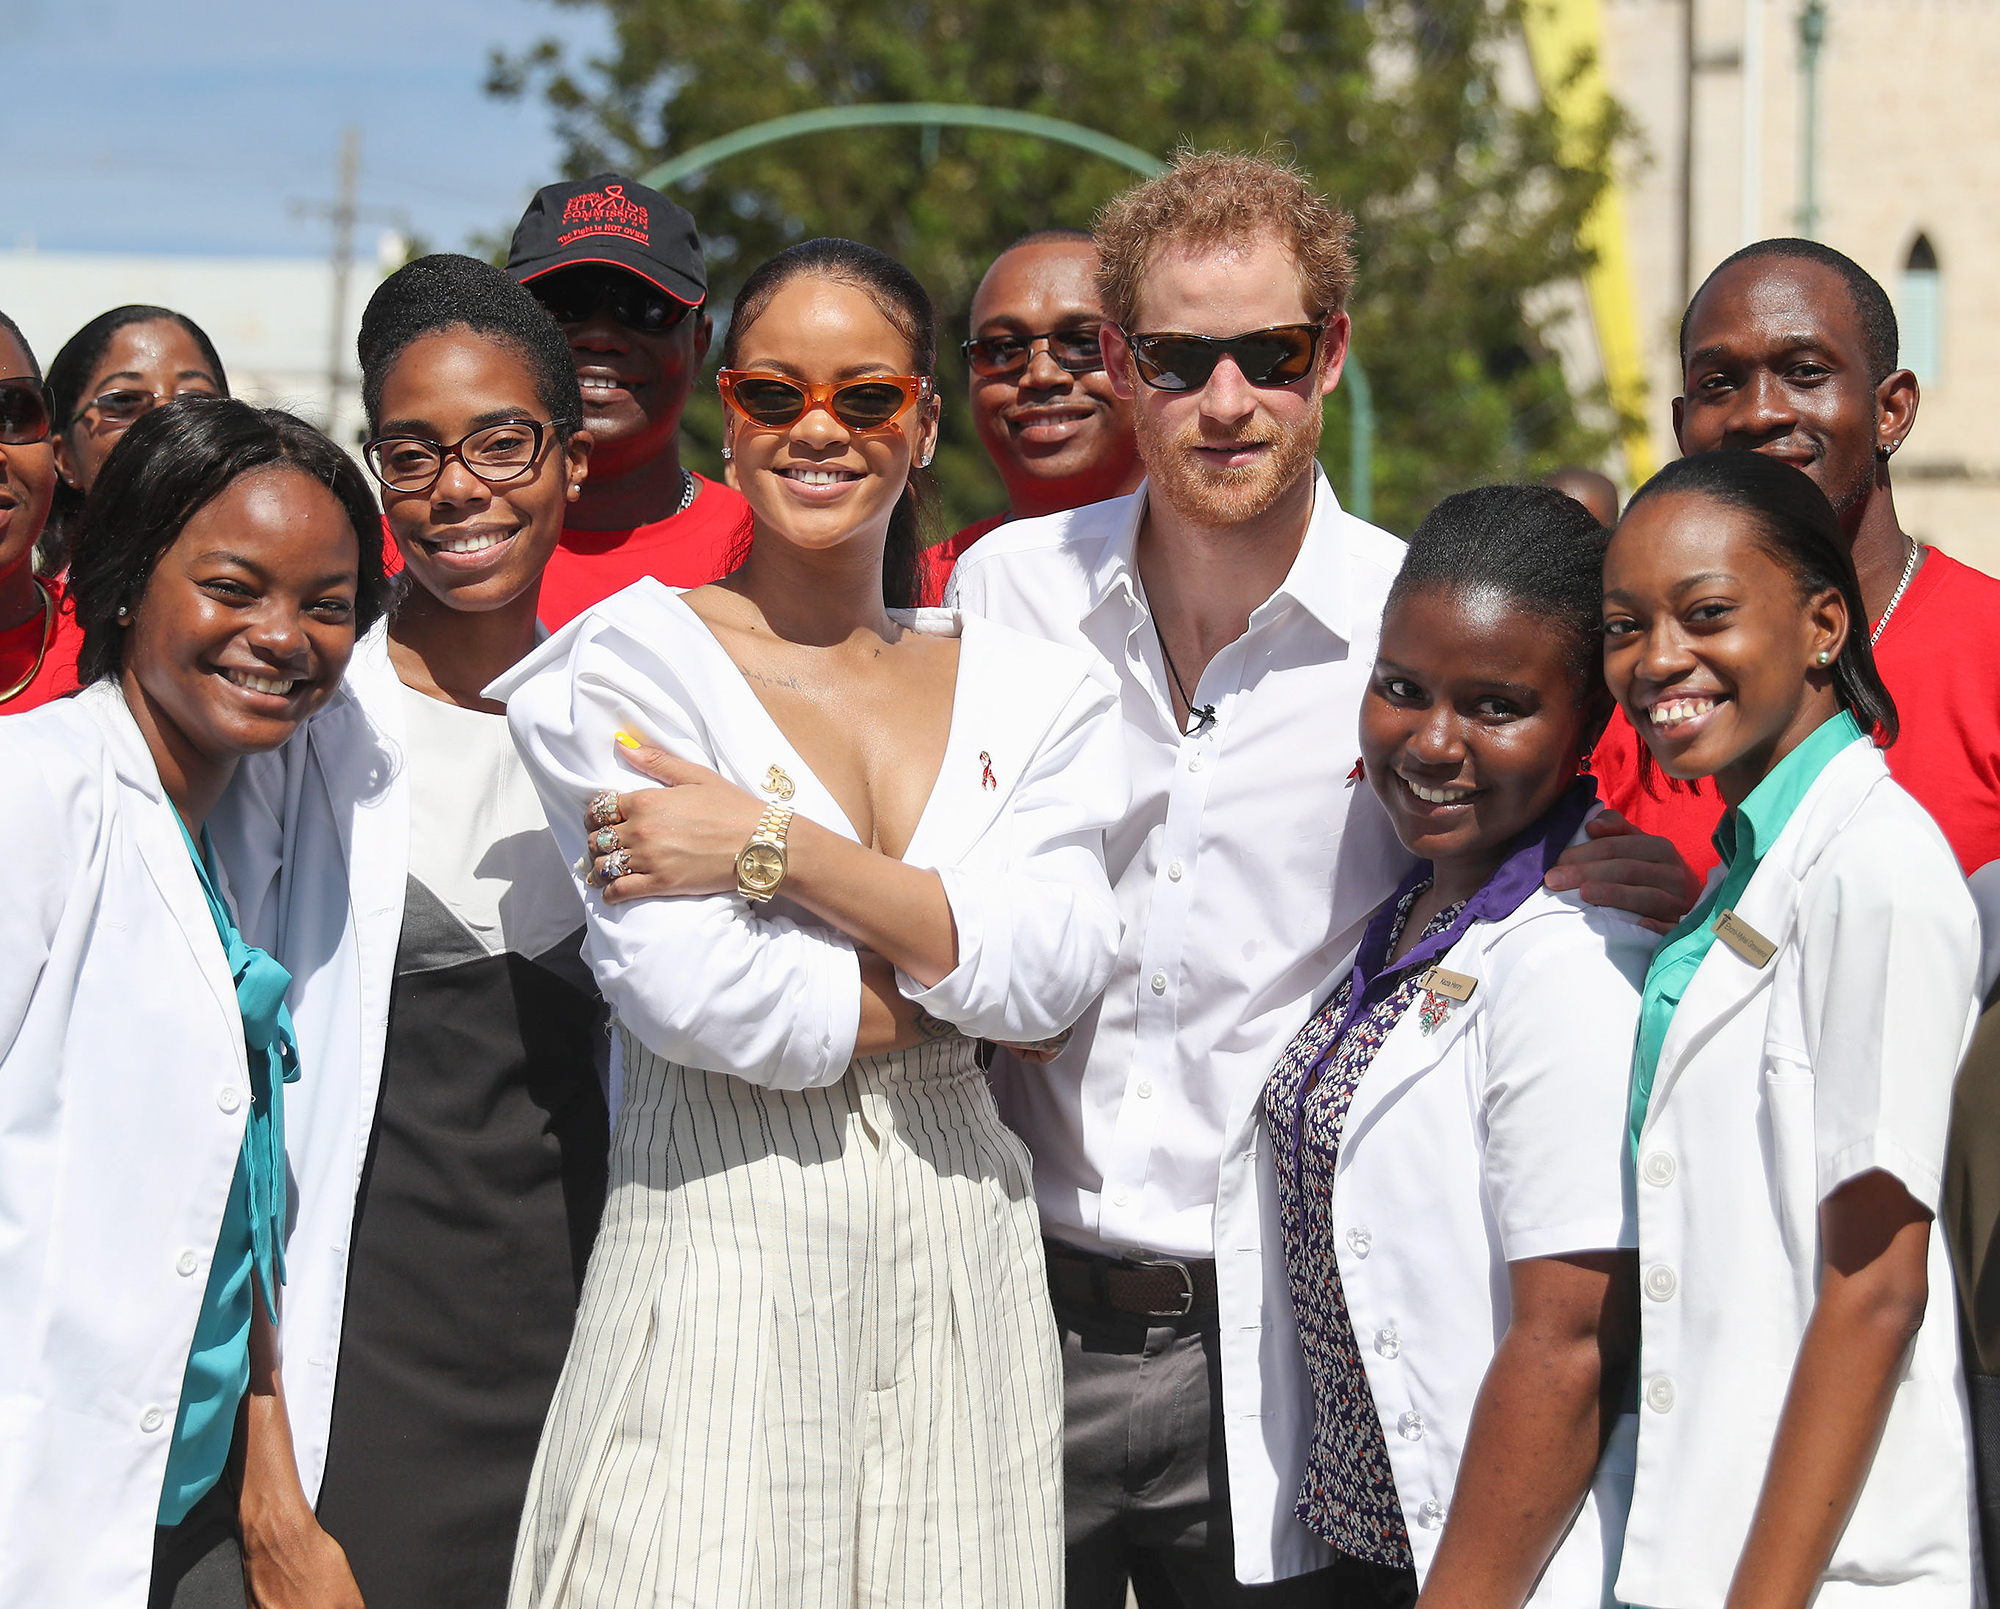 Rihanna and Prince Harry Attend Man Aware Event in Barbados